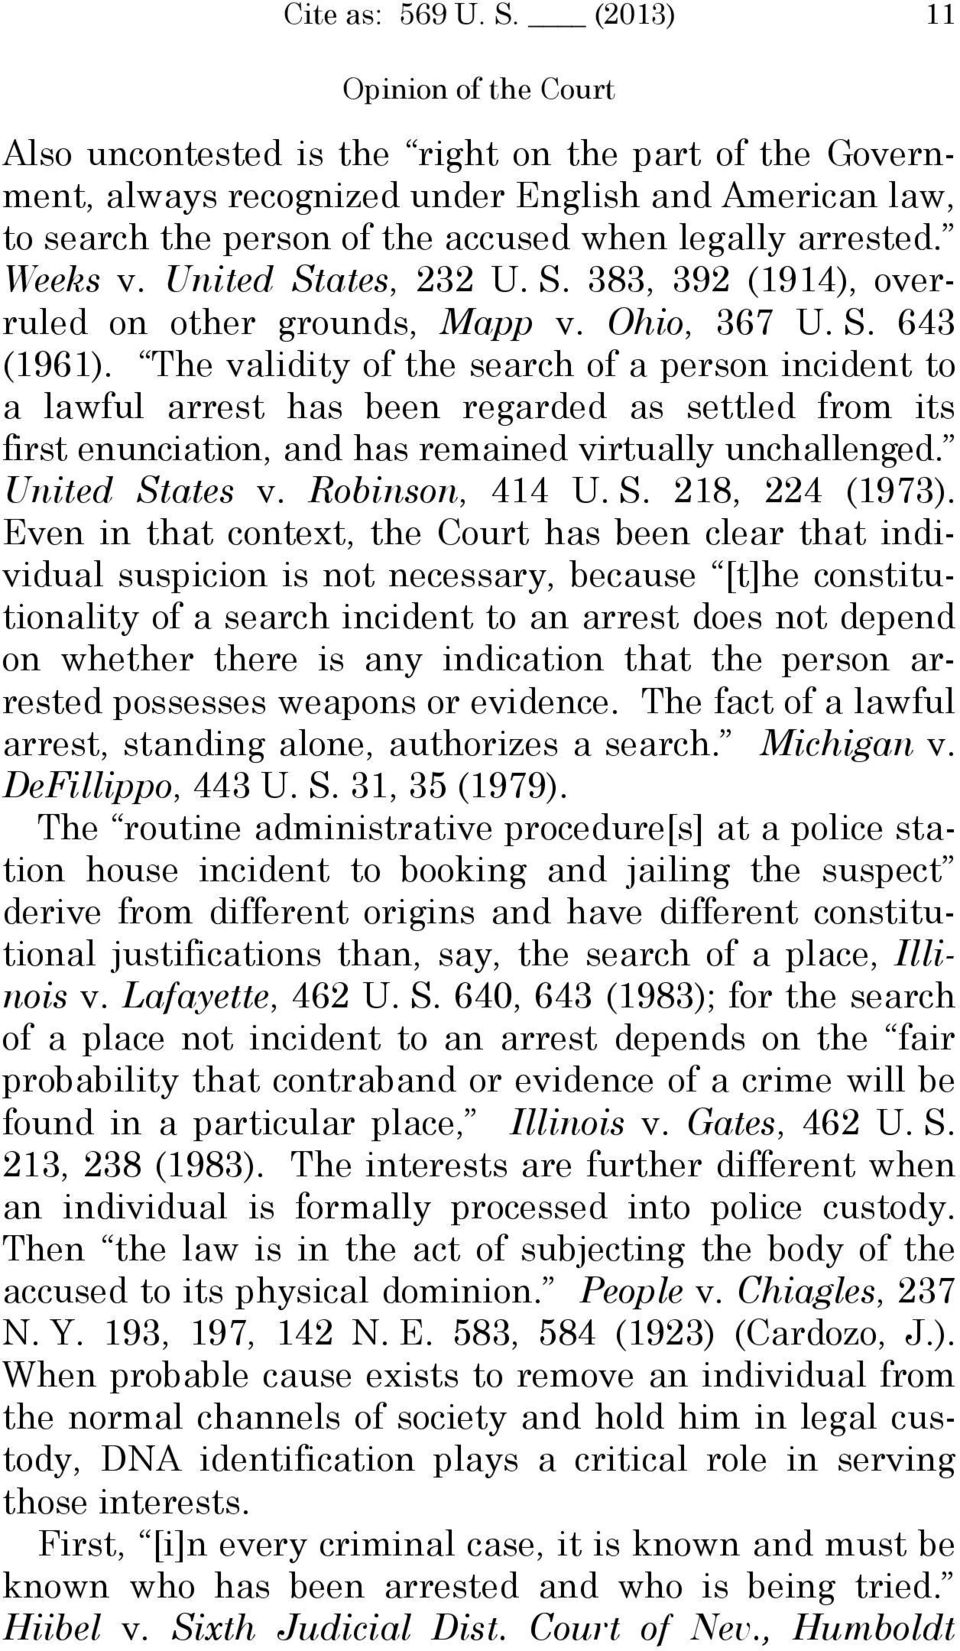 The validity of the search of a person incident to a lawful arrest has been regarded as settled from its first enunciation, and has remained virtually unchallenged. United States v. Robinson, 414 U.